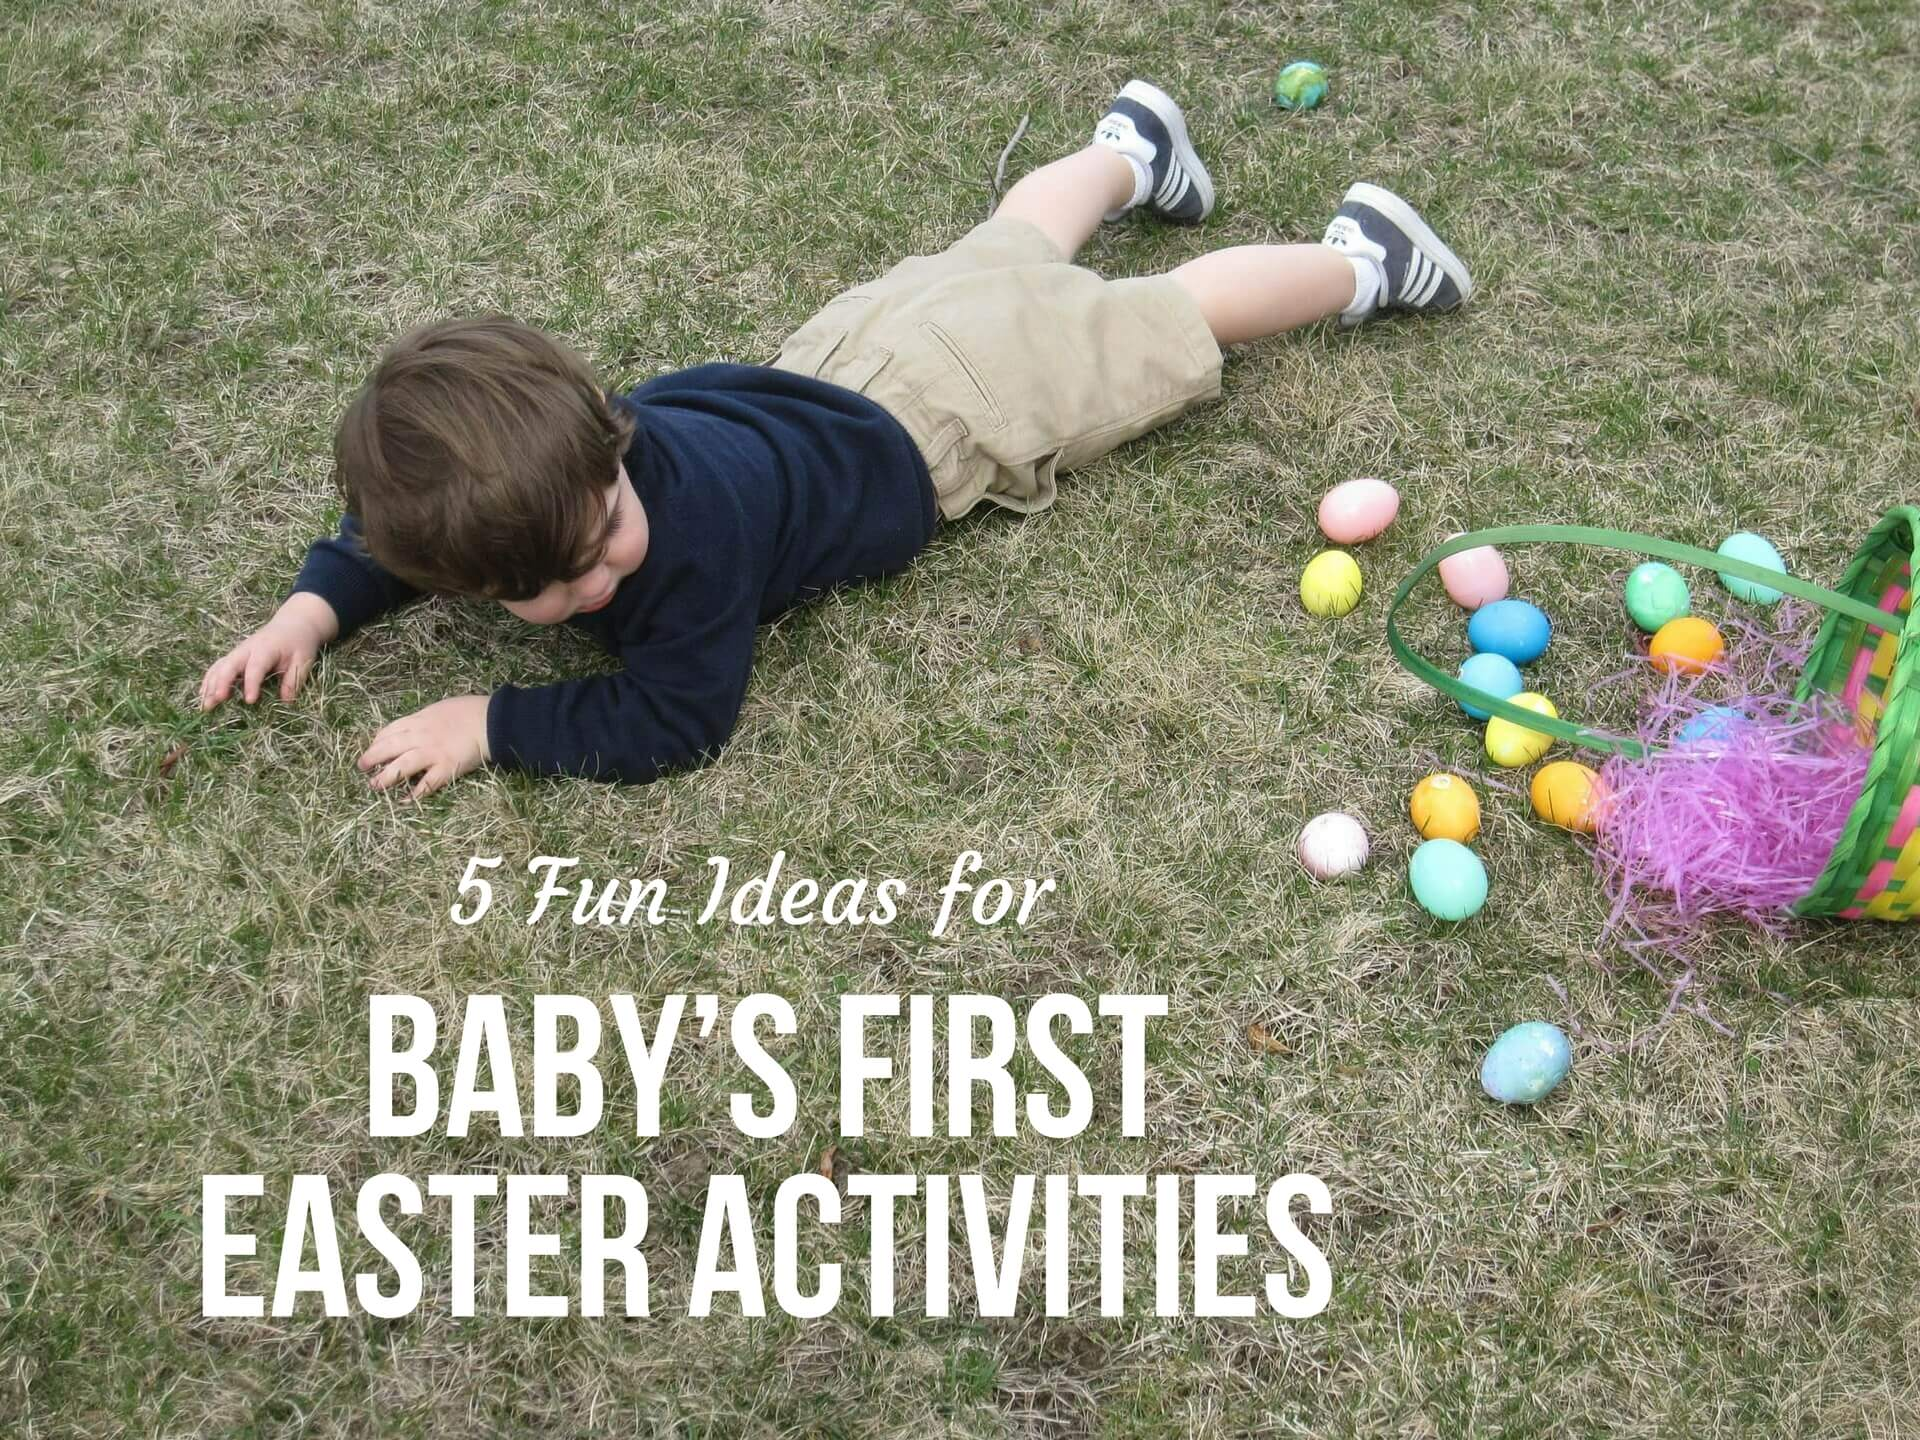 5 FUN IDEAS FOR BABY'S FIRST EASTER ACTIVITIES